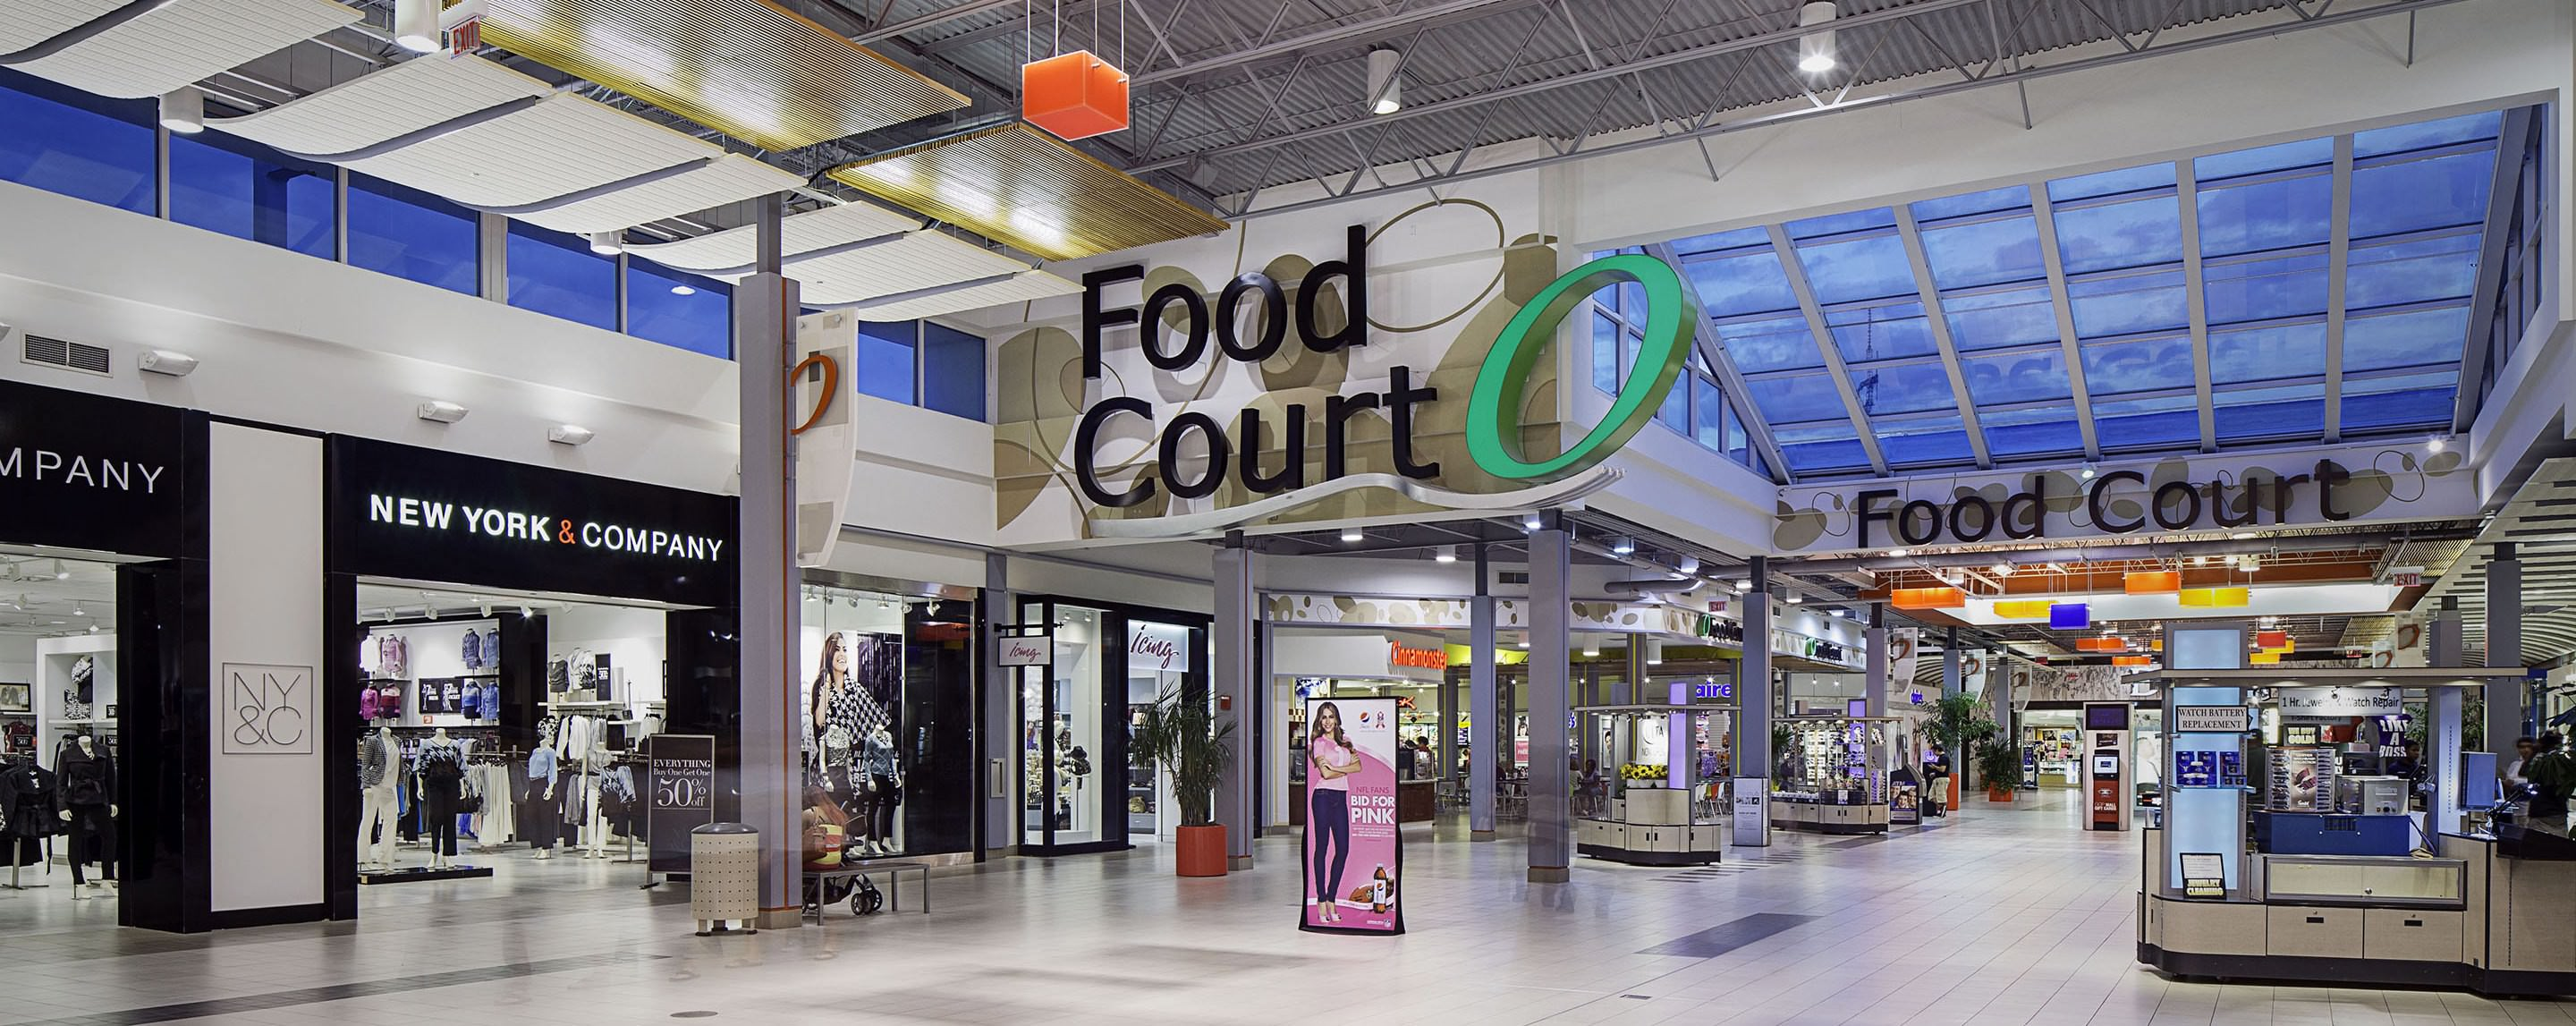 At night, the Oakwood Center sign shines bright over the mall's food court entrance